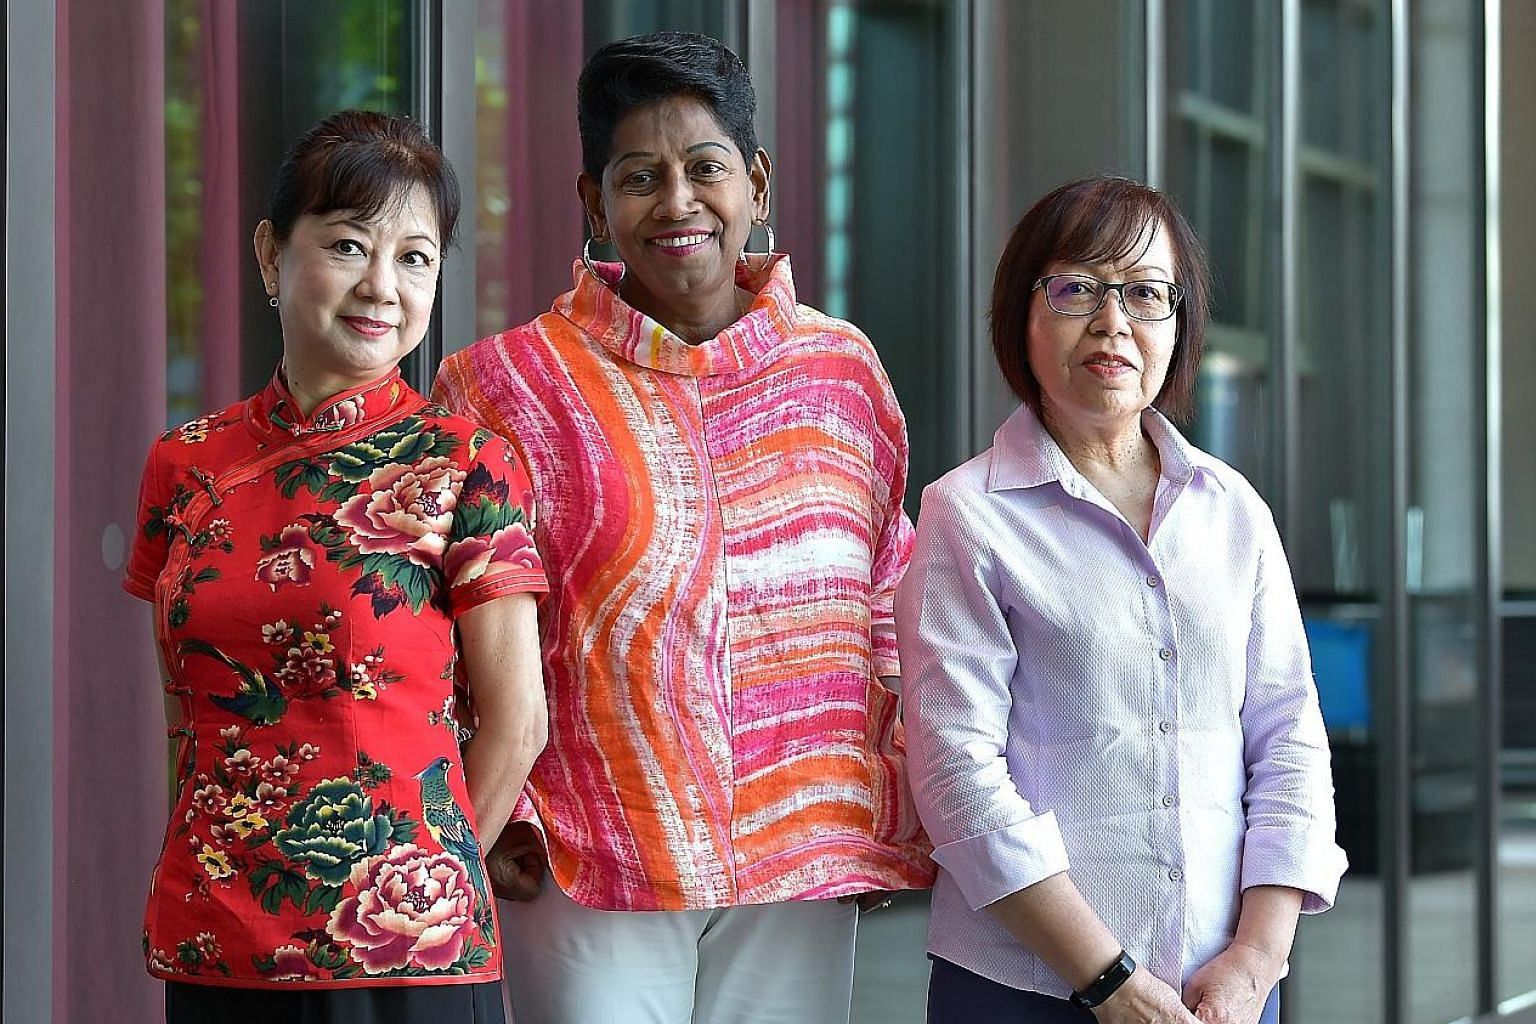 (From far left) Madam Teo Lin Lee, 59; Madam K. Madavy Nair, 69; and Madam Normah Ahmad, 66, are all long-time volunteers. They shared their experiences yesterday at an event celebrating active Merdeka Generation women.